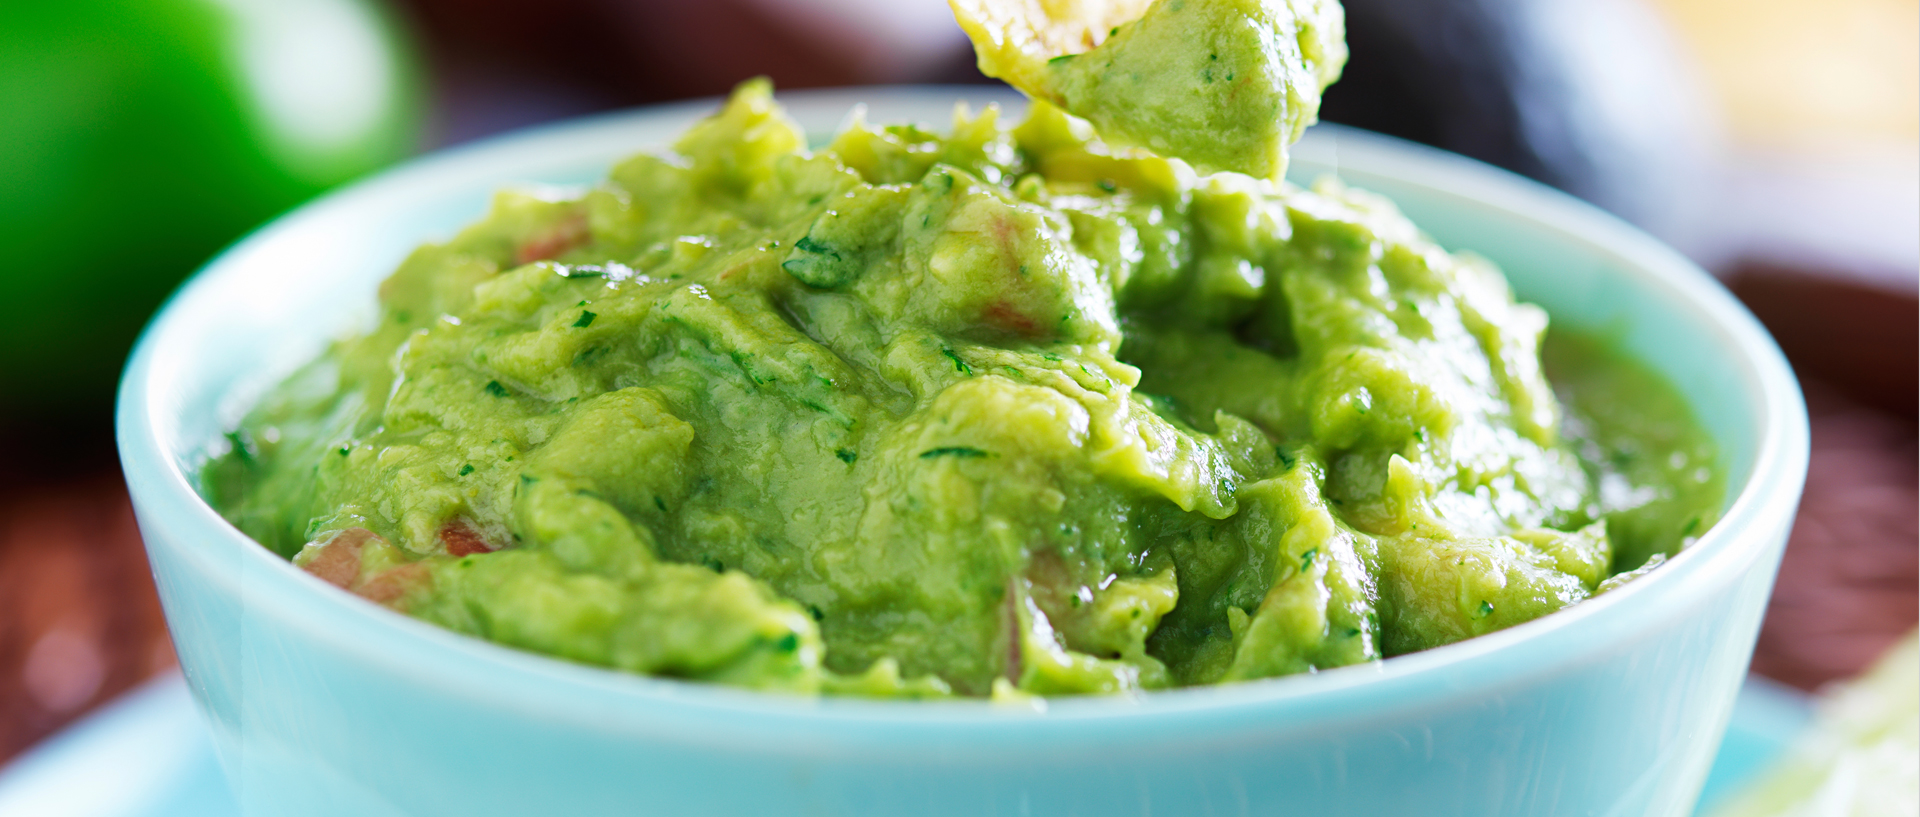 the best store-bought brands of guacamole